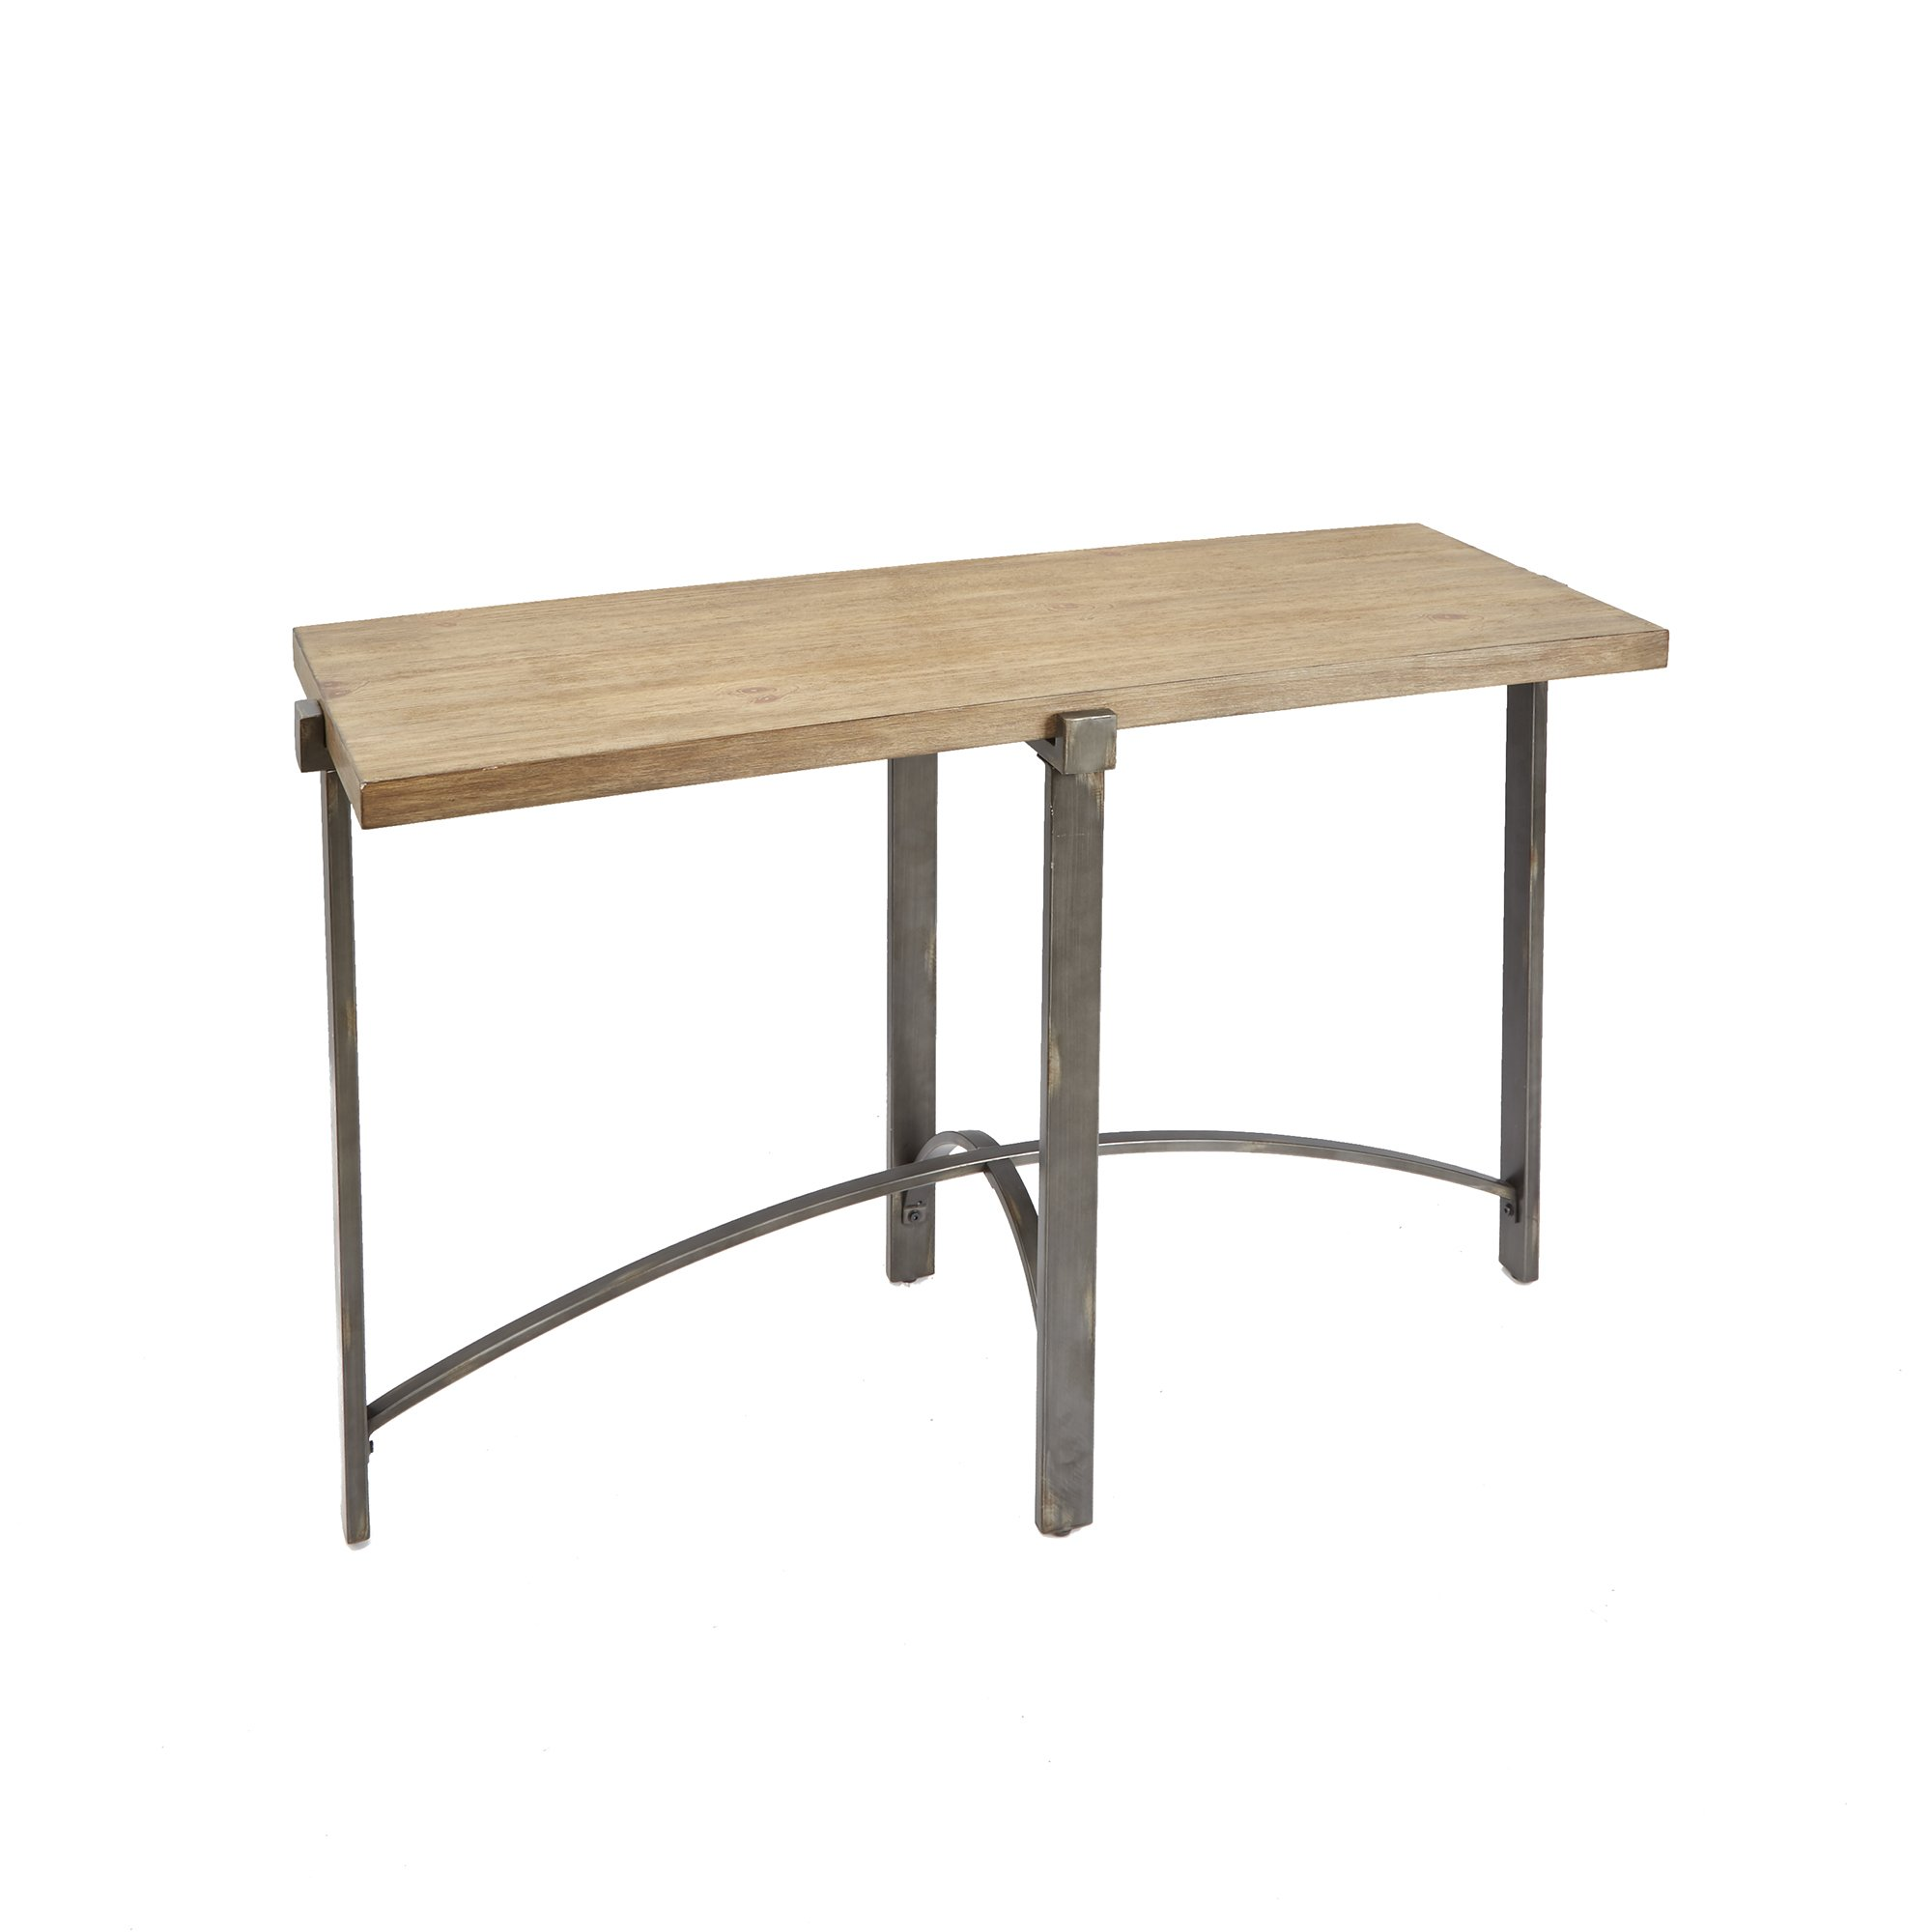 Silverwood FT1276-CNS-SWO Lewis Console Table Top, 19.5'' L x 49.5'' W x 29'' H, Wood